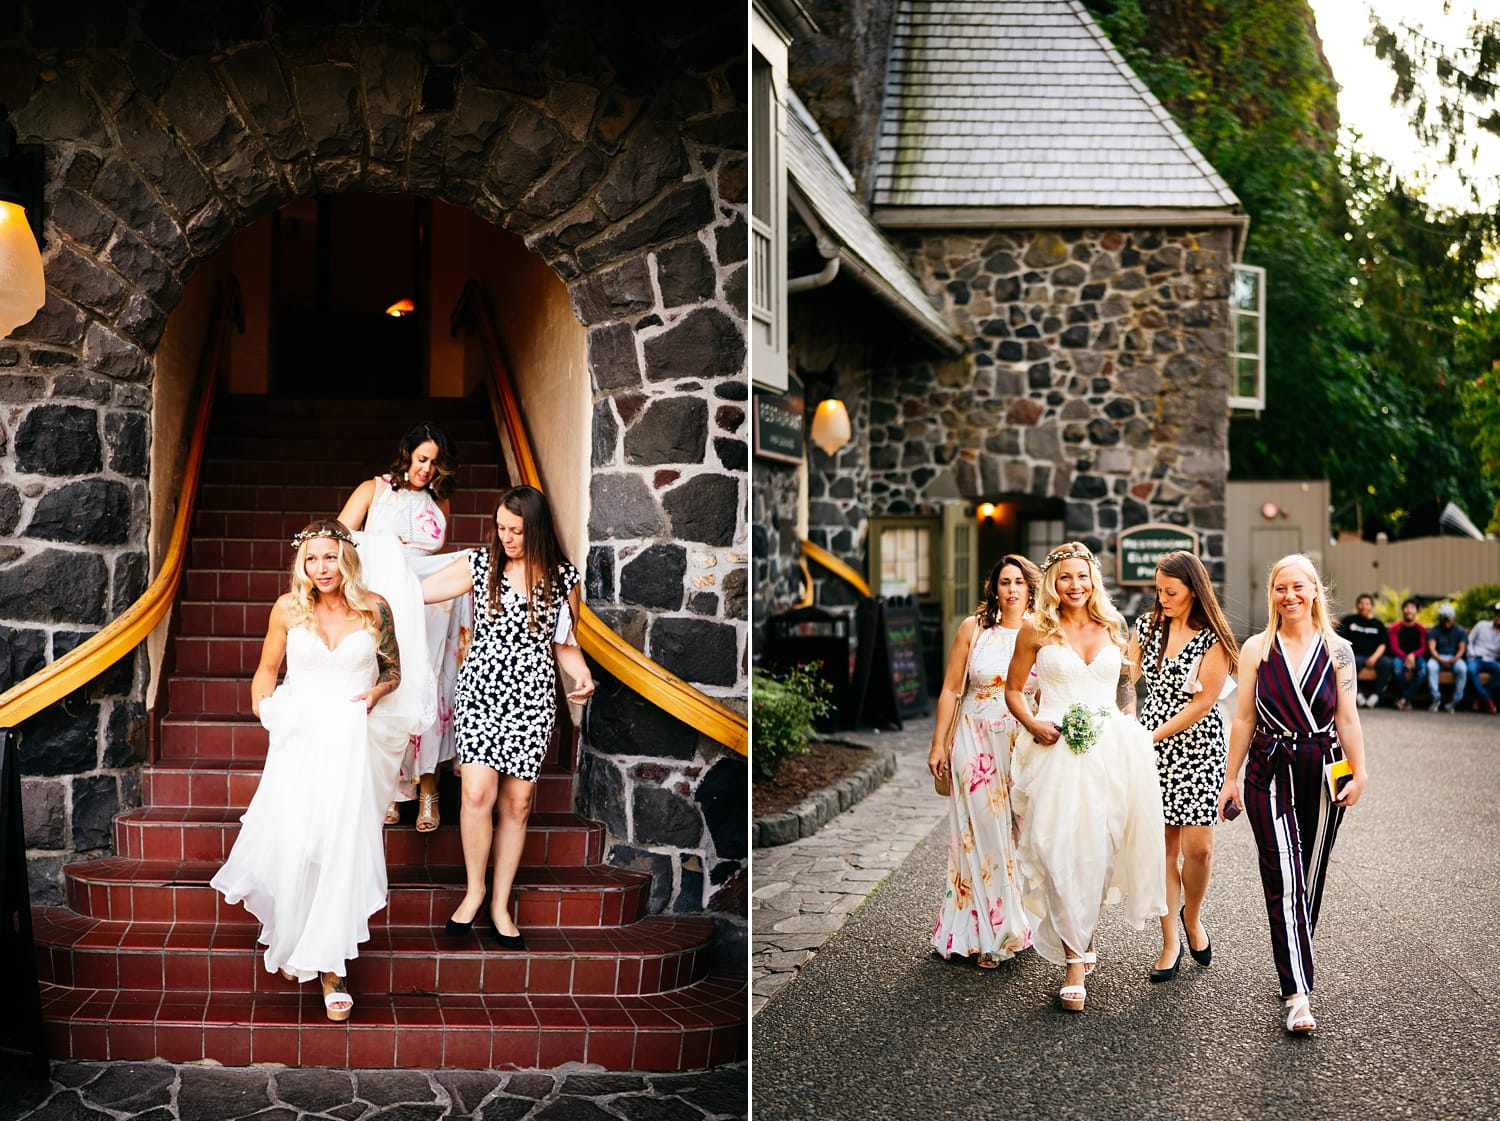 Multnomah Falls Wedding Venue